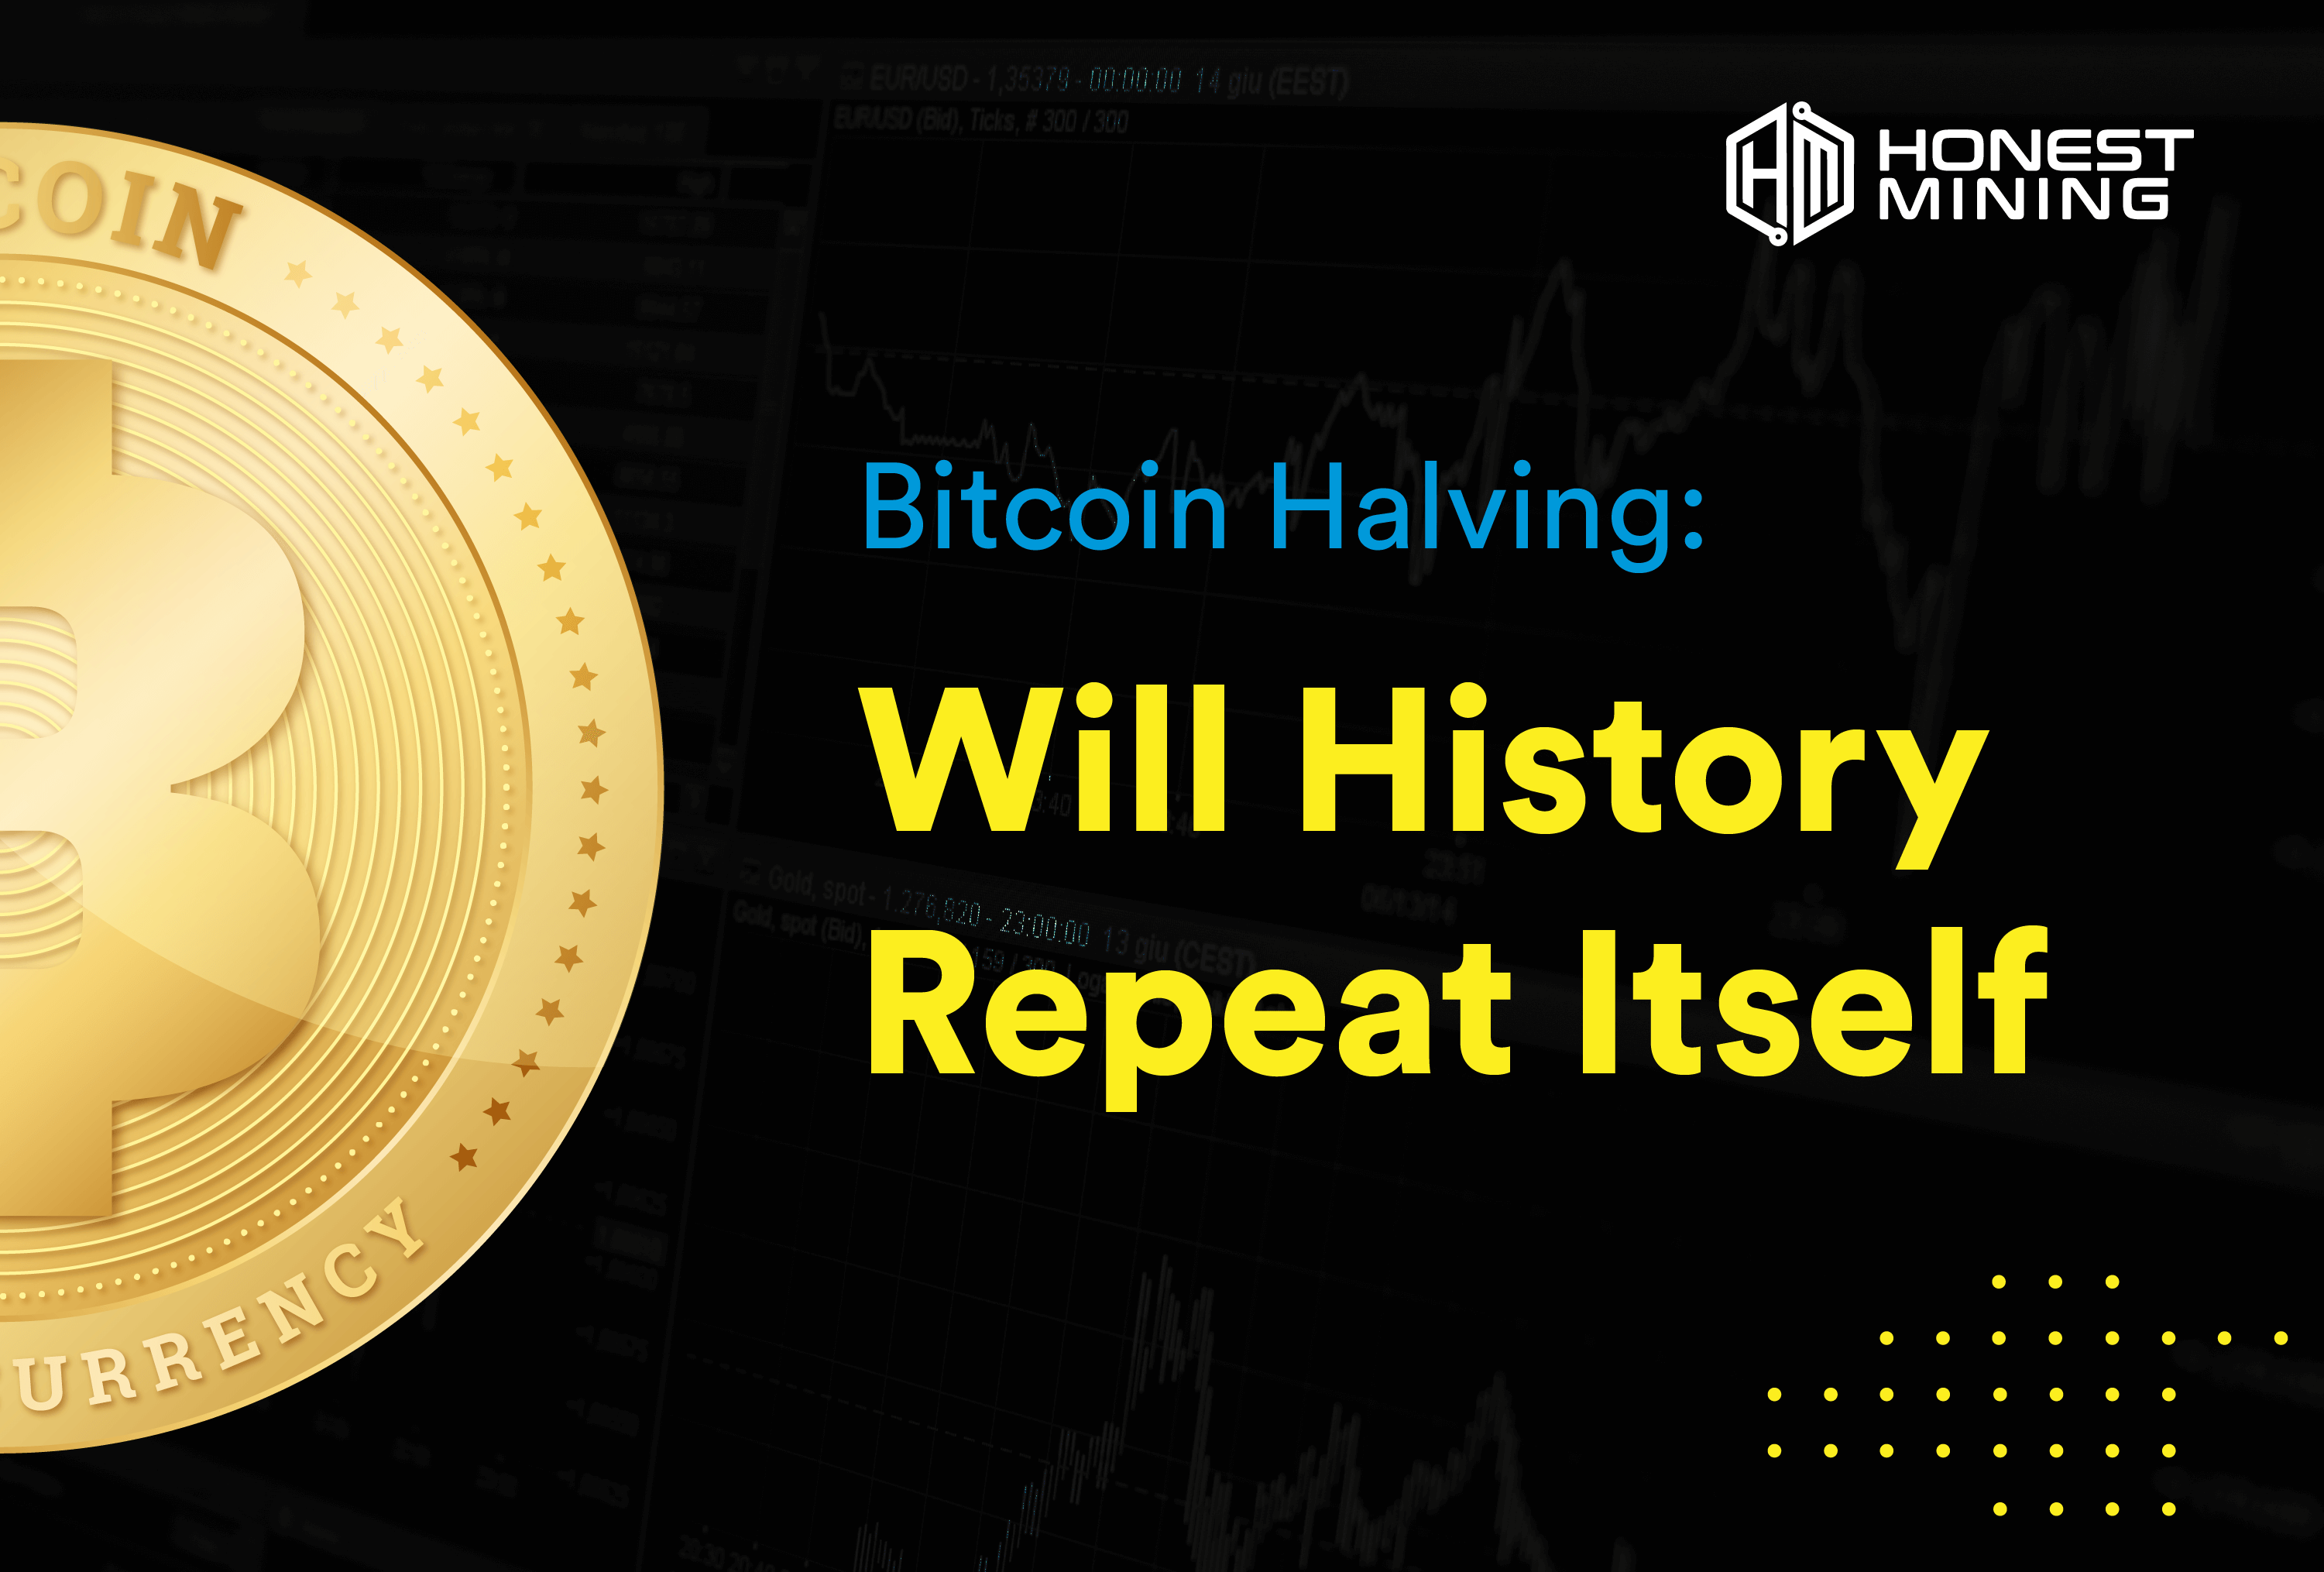 What is Bitcoin Halving and What can we expect from it